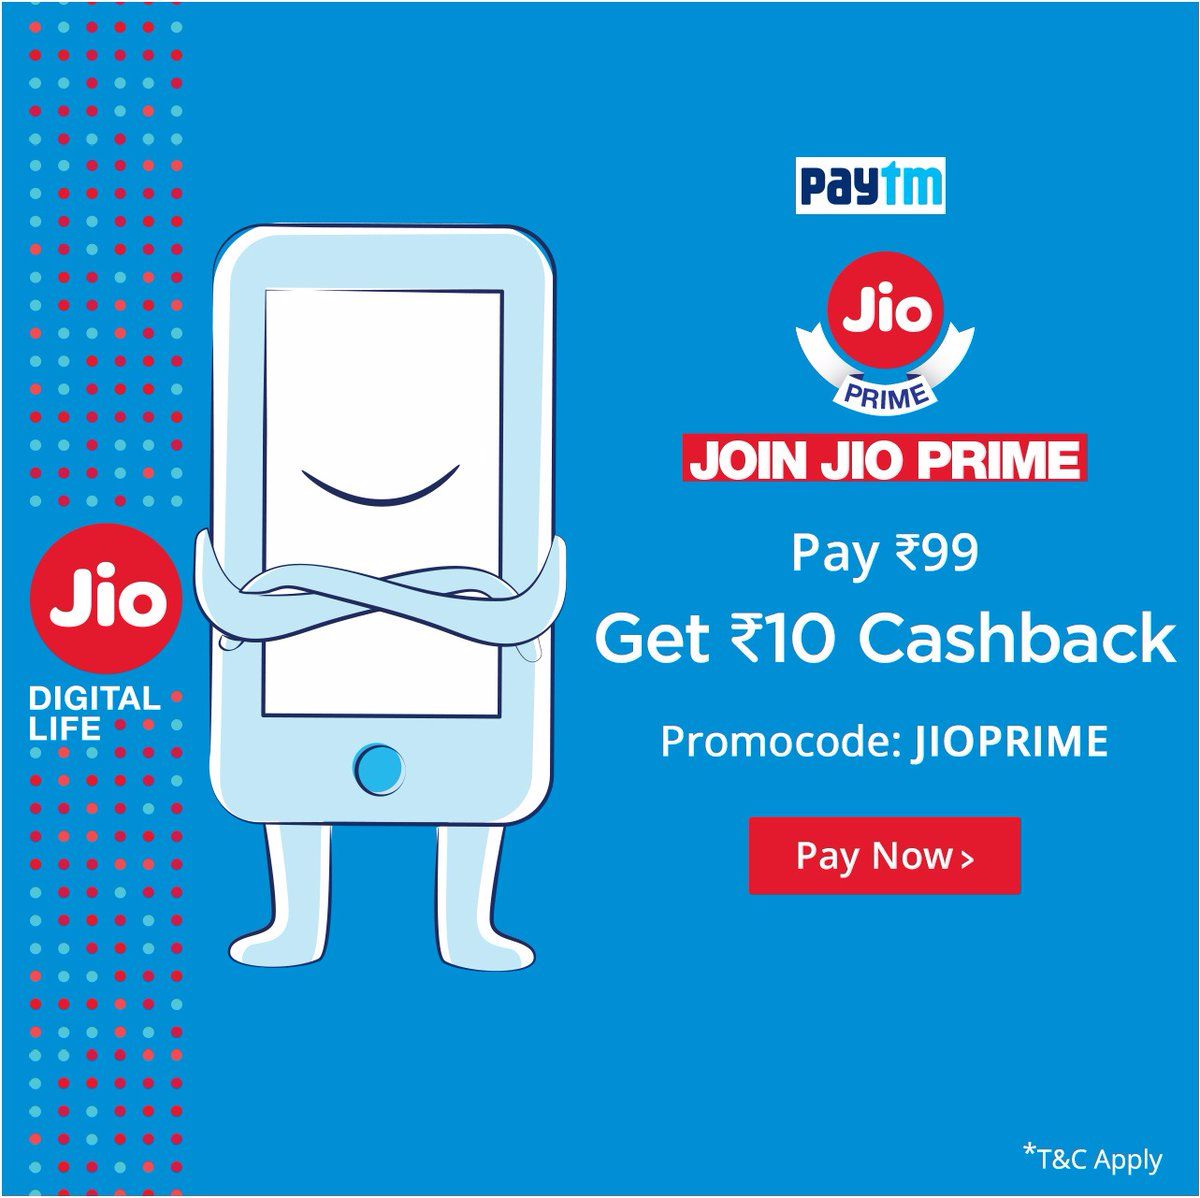 jio prime cashback offers